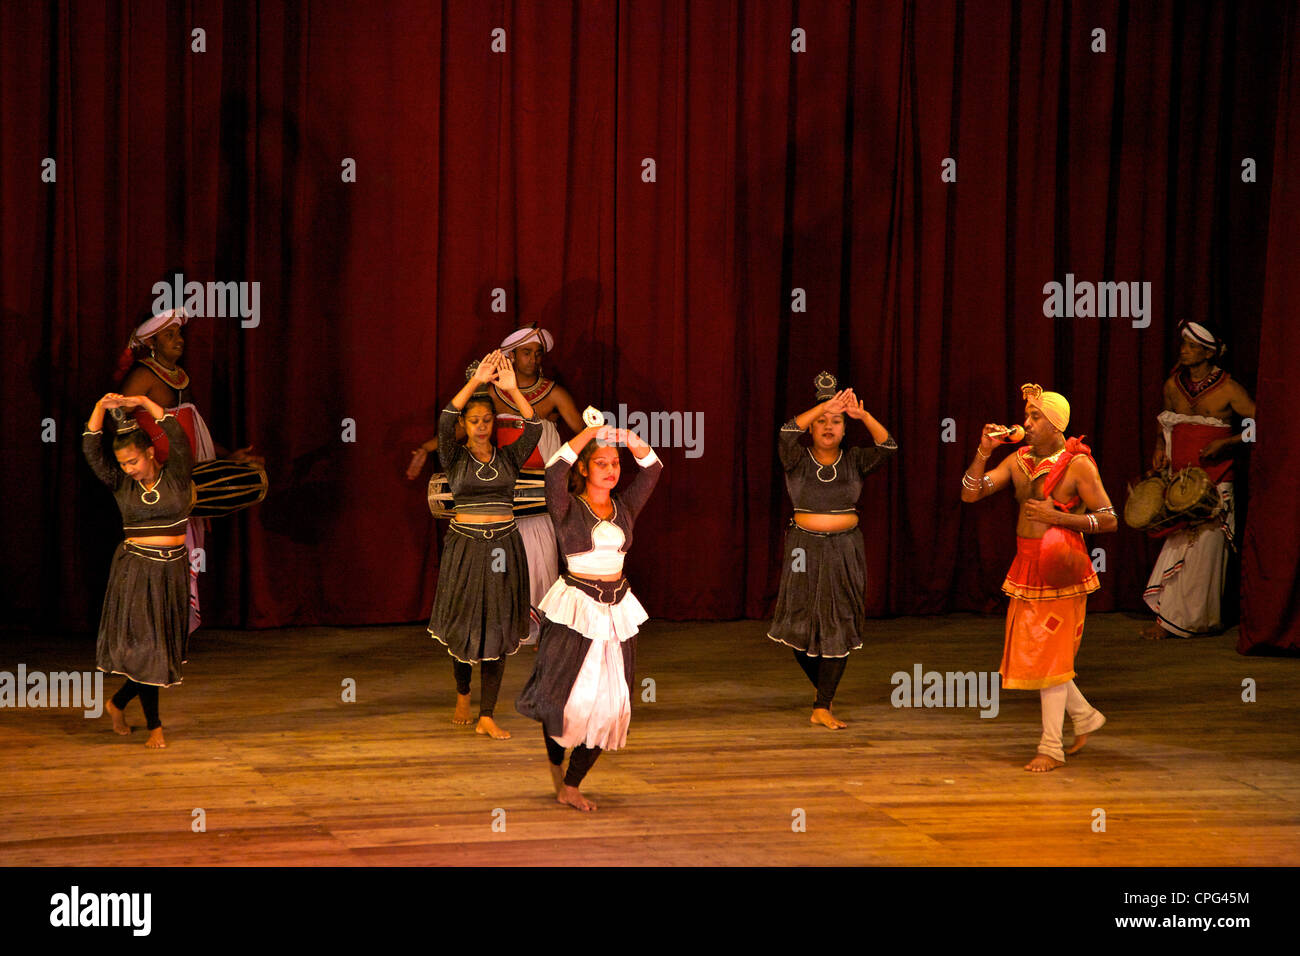 Traditional dancers and musicians, Cultural Show, Kandy, Sri Lanka, Asia - Stock Image